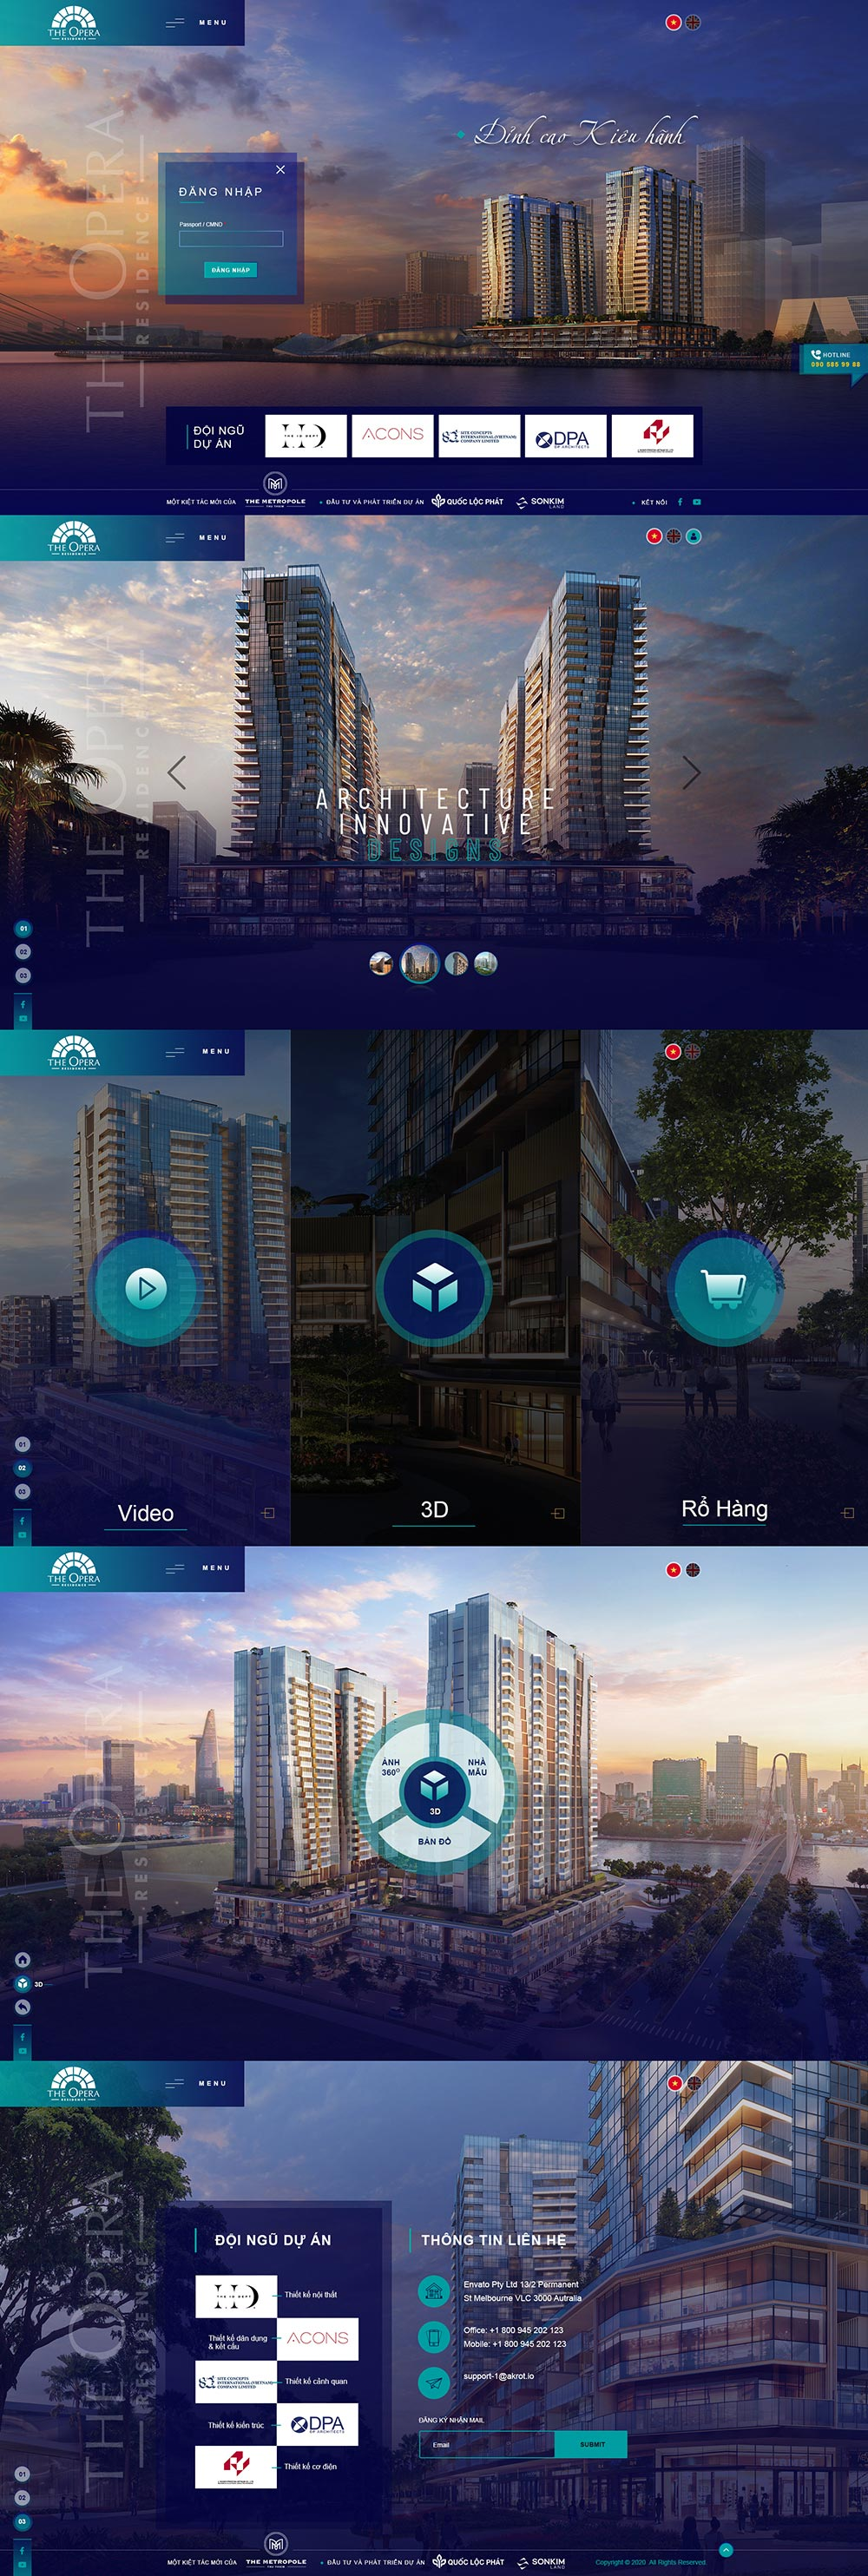 Giao diện landing page Opera Residence